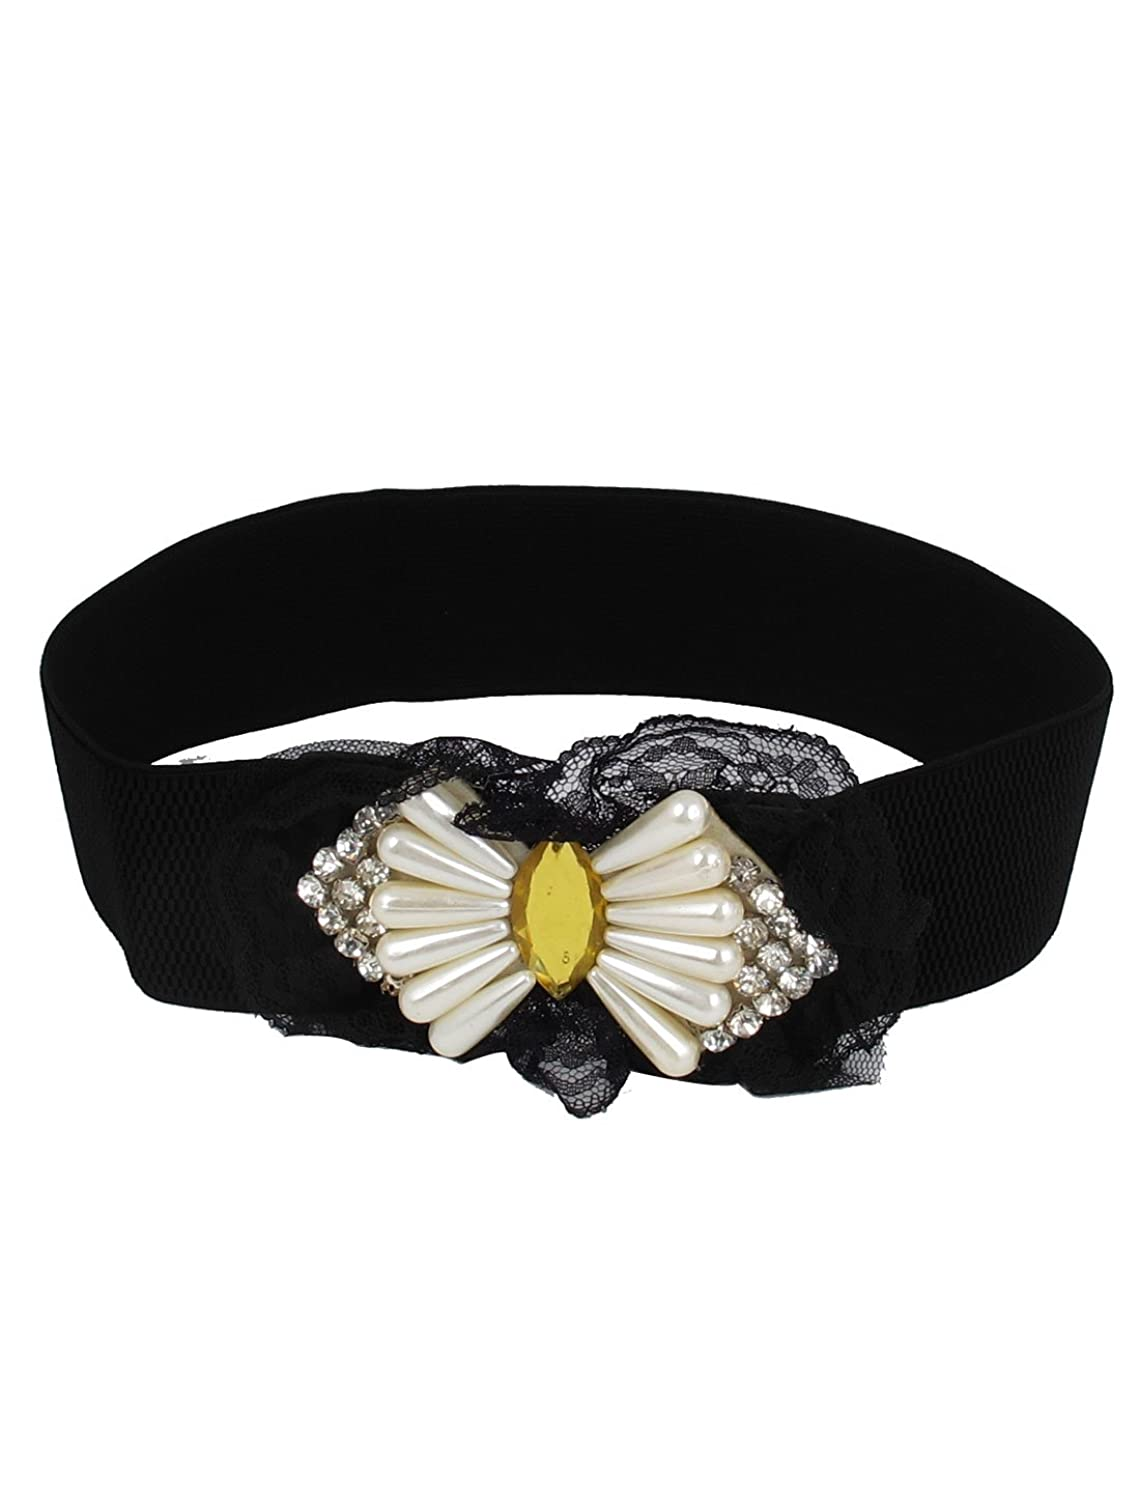 Faux Pearl Decor Bowknot Style Lady Buckle Cinch Waist Belt Band Black